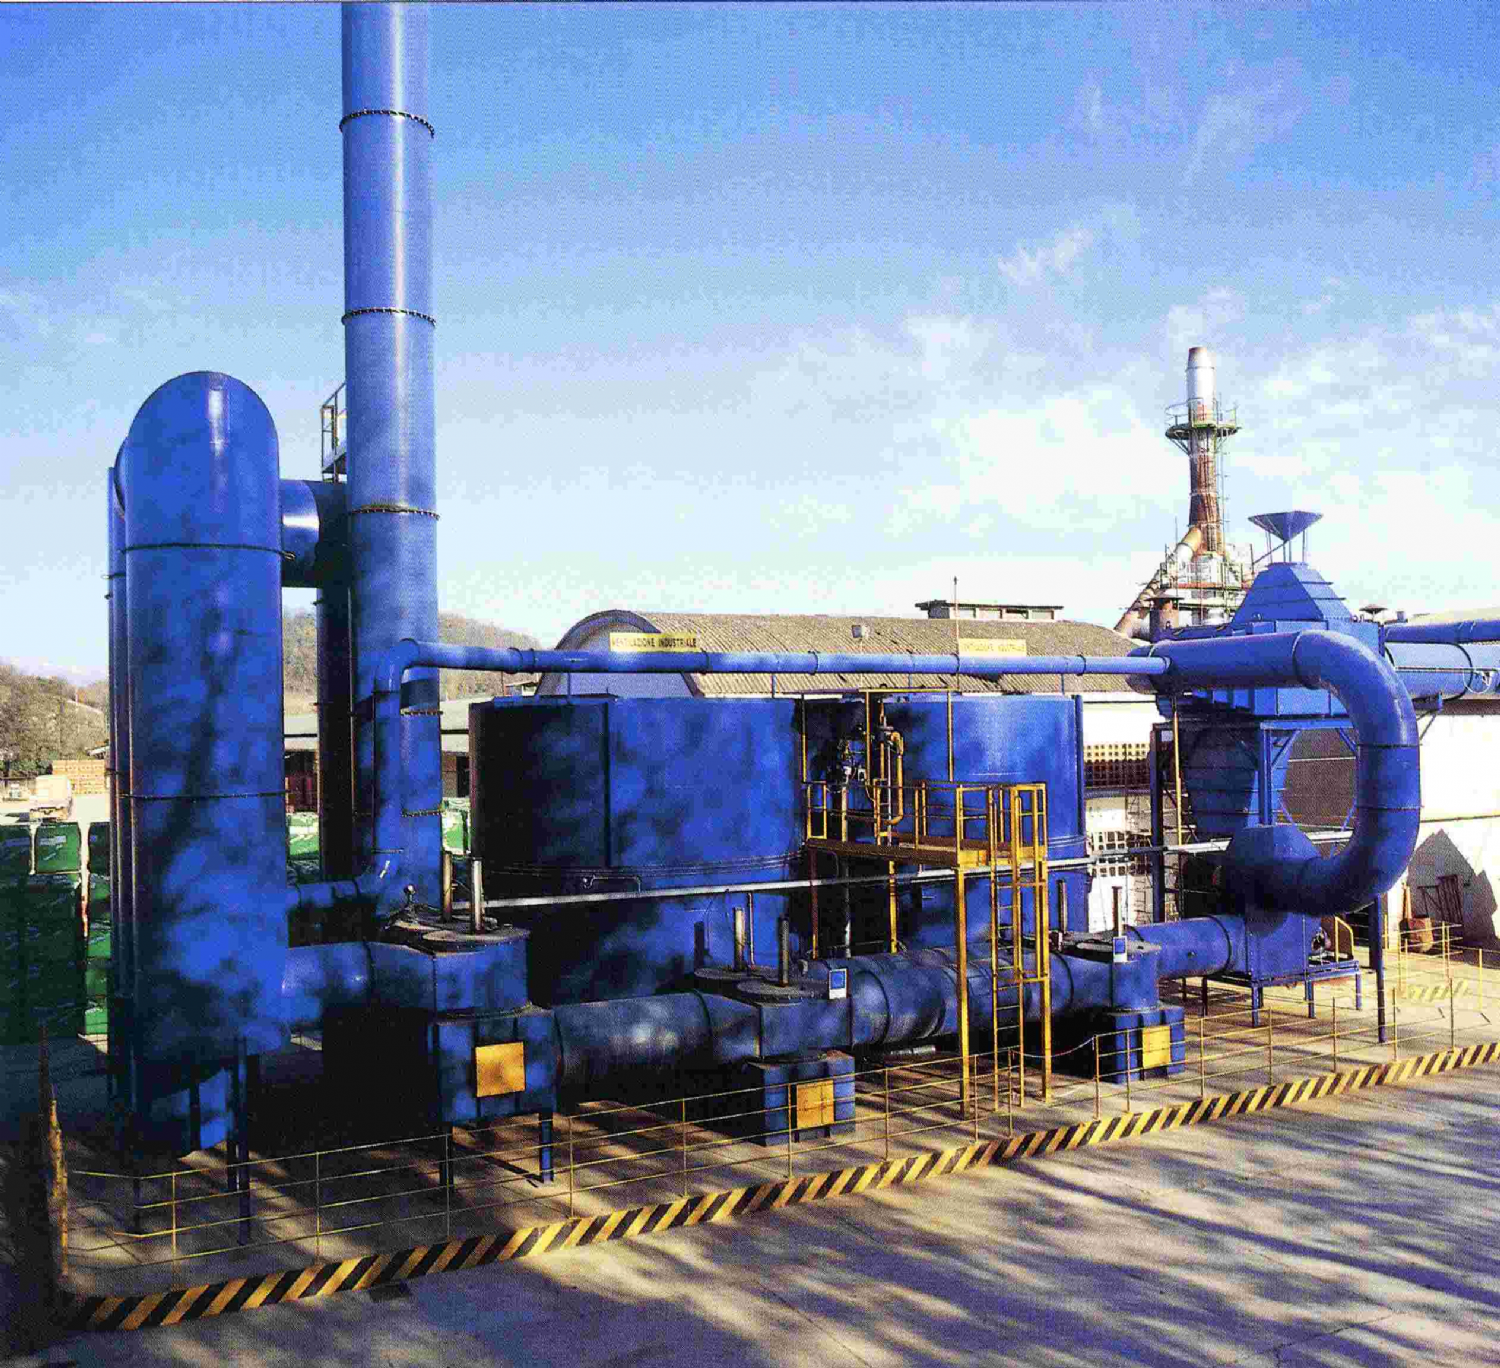 Regenerative thermal oxidizers